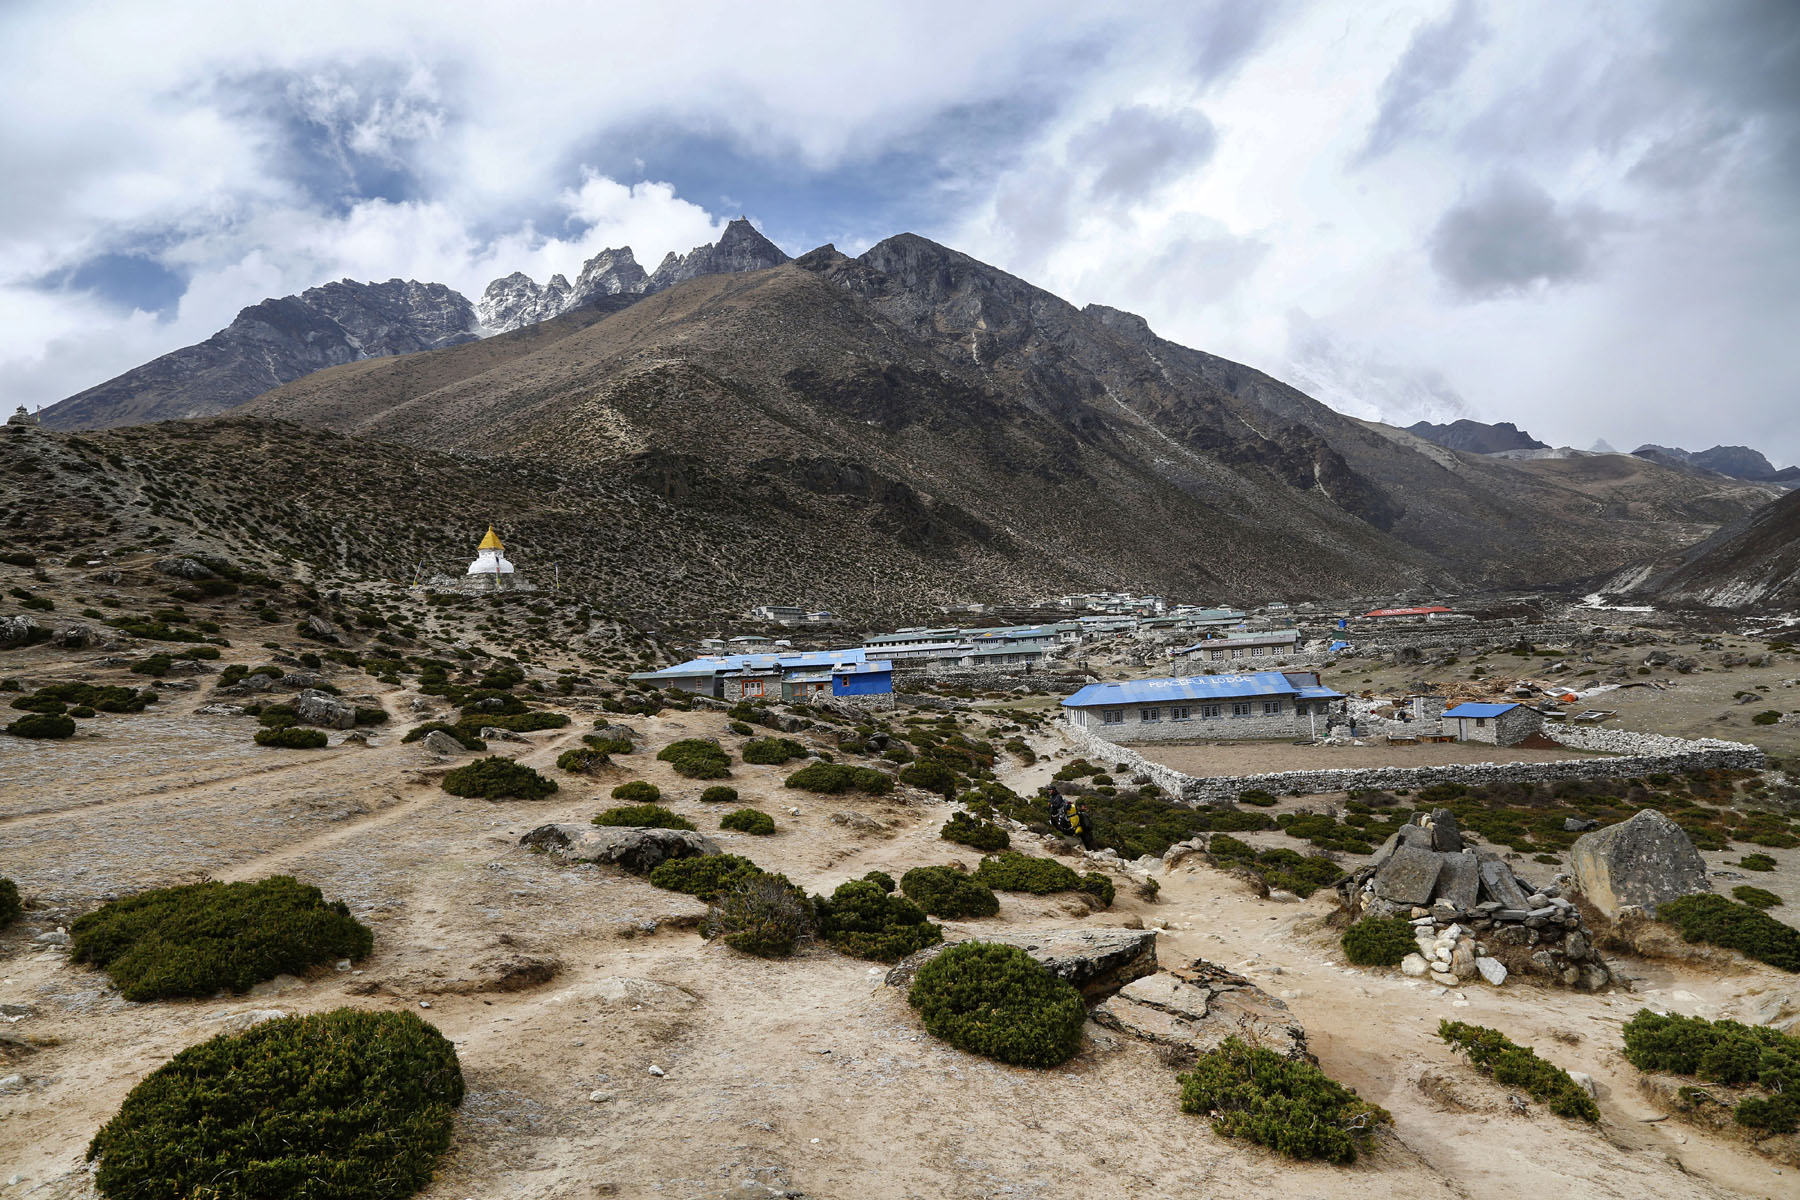 Vegetation Expanding At High Altitudes In Himalayas, Everest Region Due To Global Warming